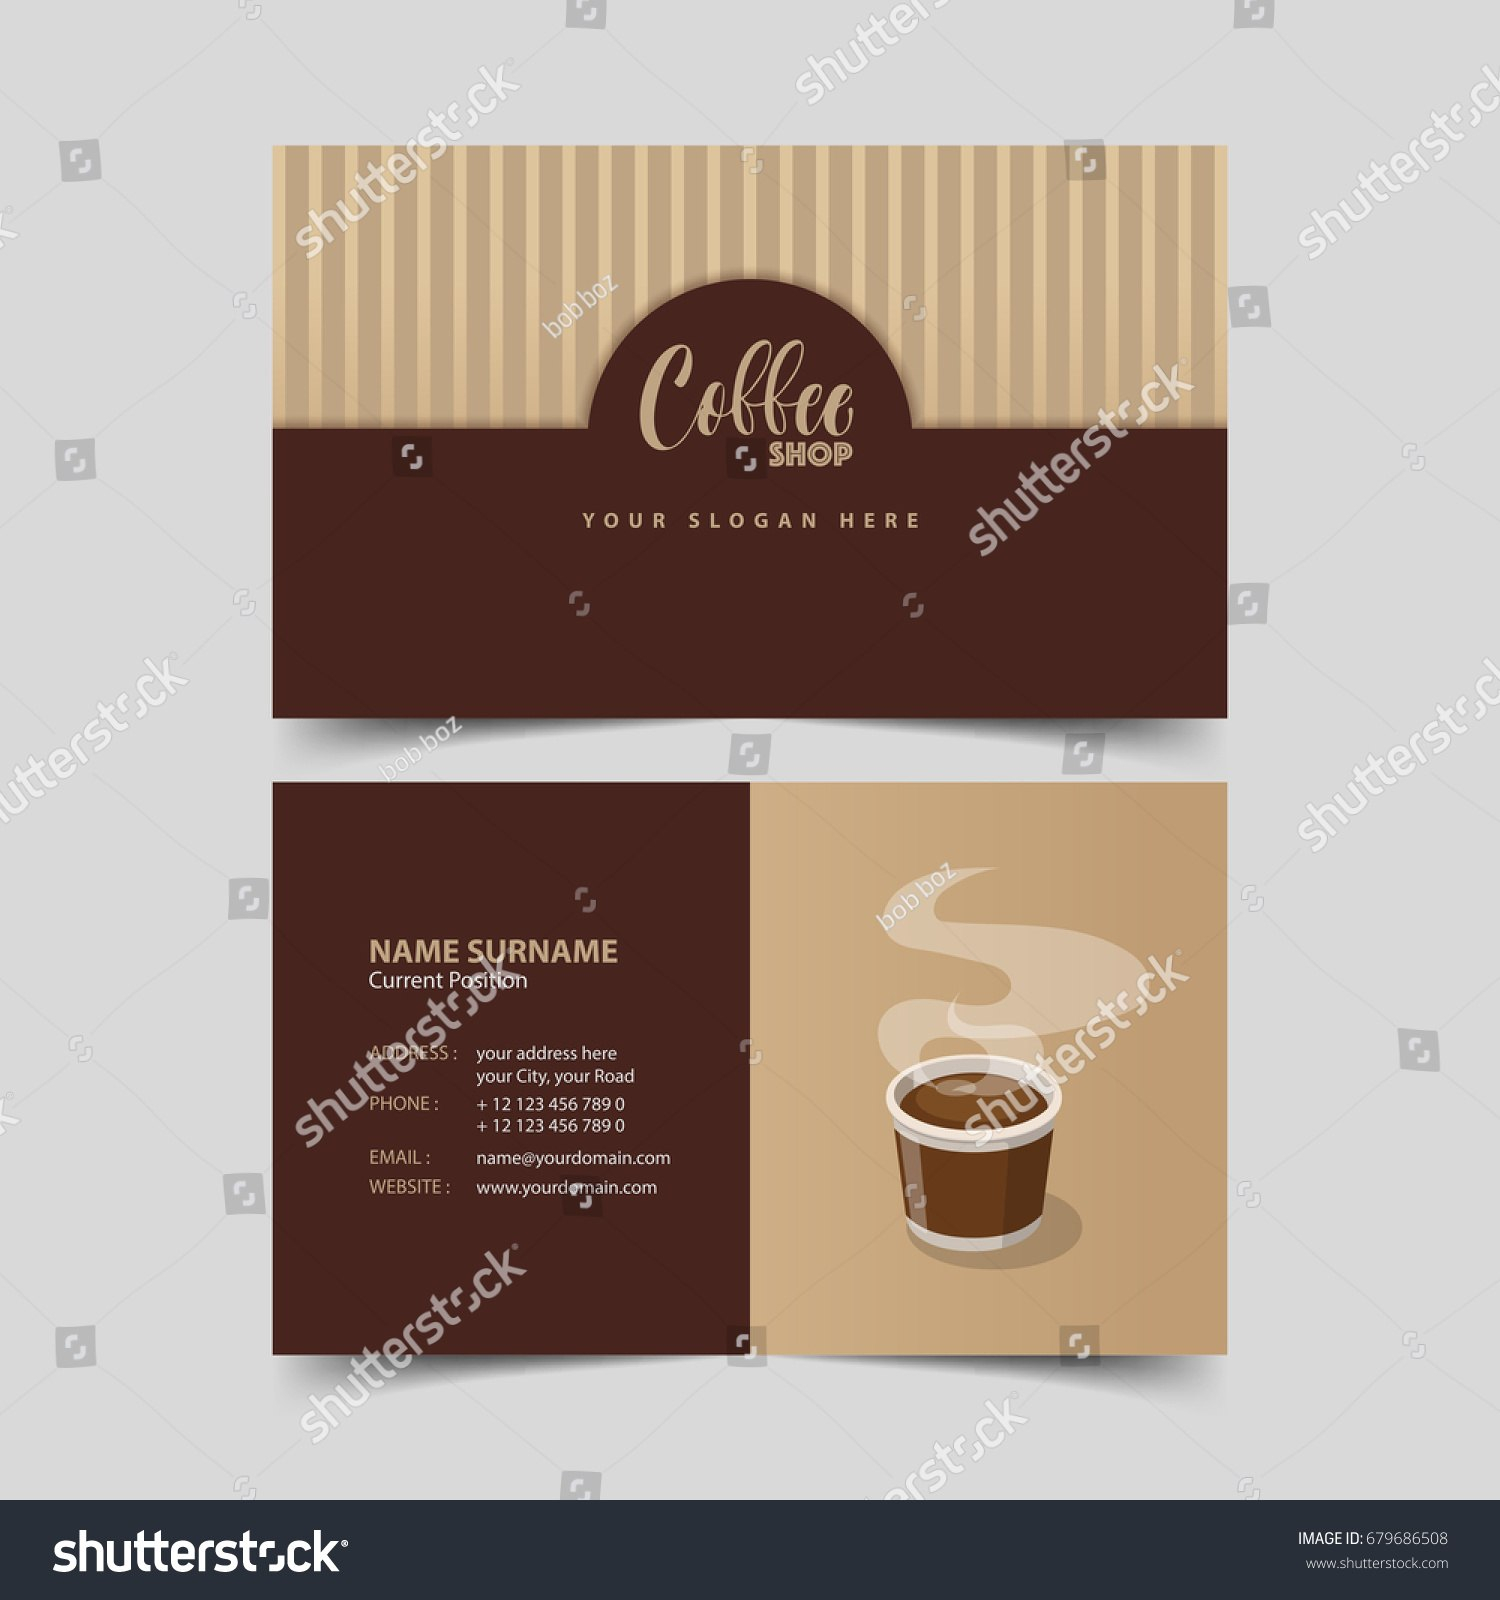 Coffee Shop Business Card Design Template Stock Vector Royalty Free For Coffee Business Card Template Free